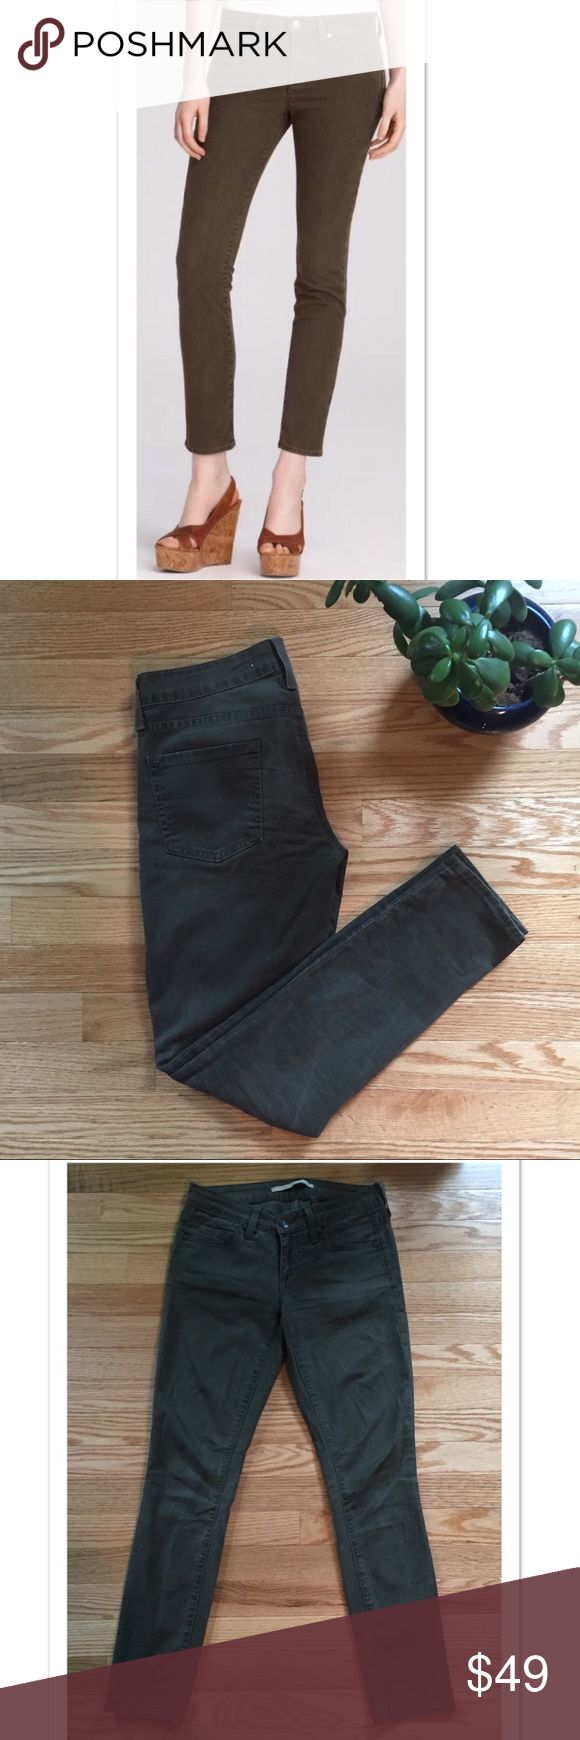 "Vince Olive Green Skinny 5 Pocket Jeans Size 25 Beautiful Olive skinny jeans by Vince. 98% cotton; 2% spandex. A size 25, they measure 14.5"" across the waist; 7"" Length ; 28"" inseam. EUC Vince Jeans Skinny"